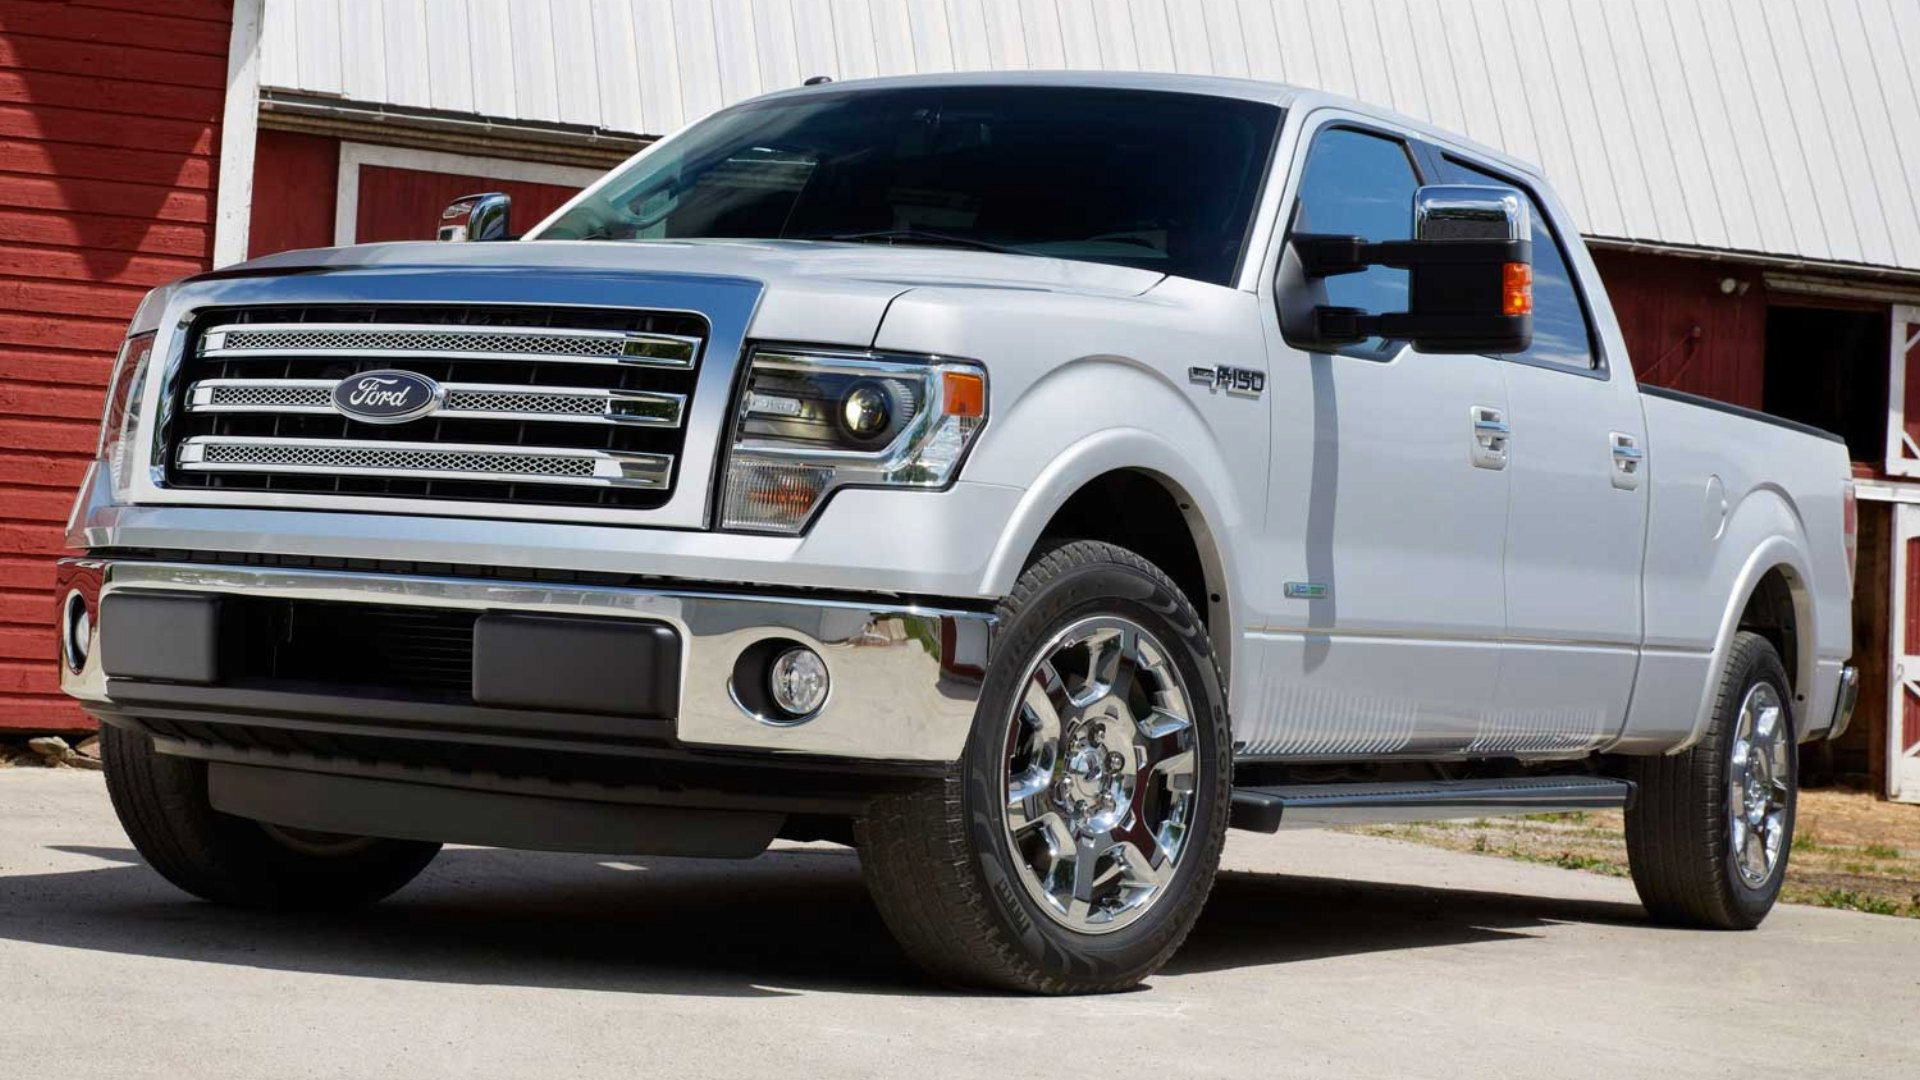 2013 Ford F 150 HD Wallpapers High Quality Wallpapers 1920x1080